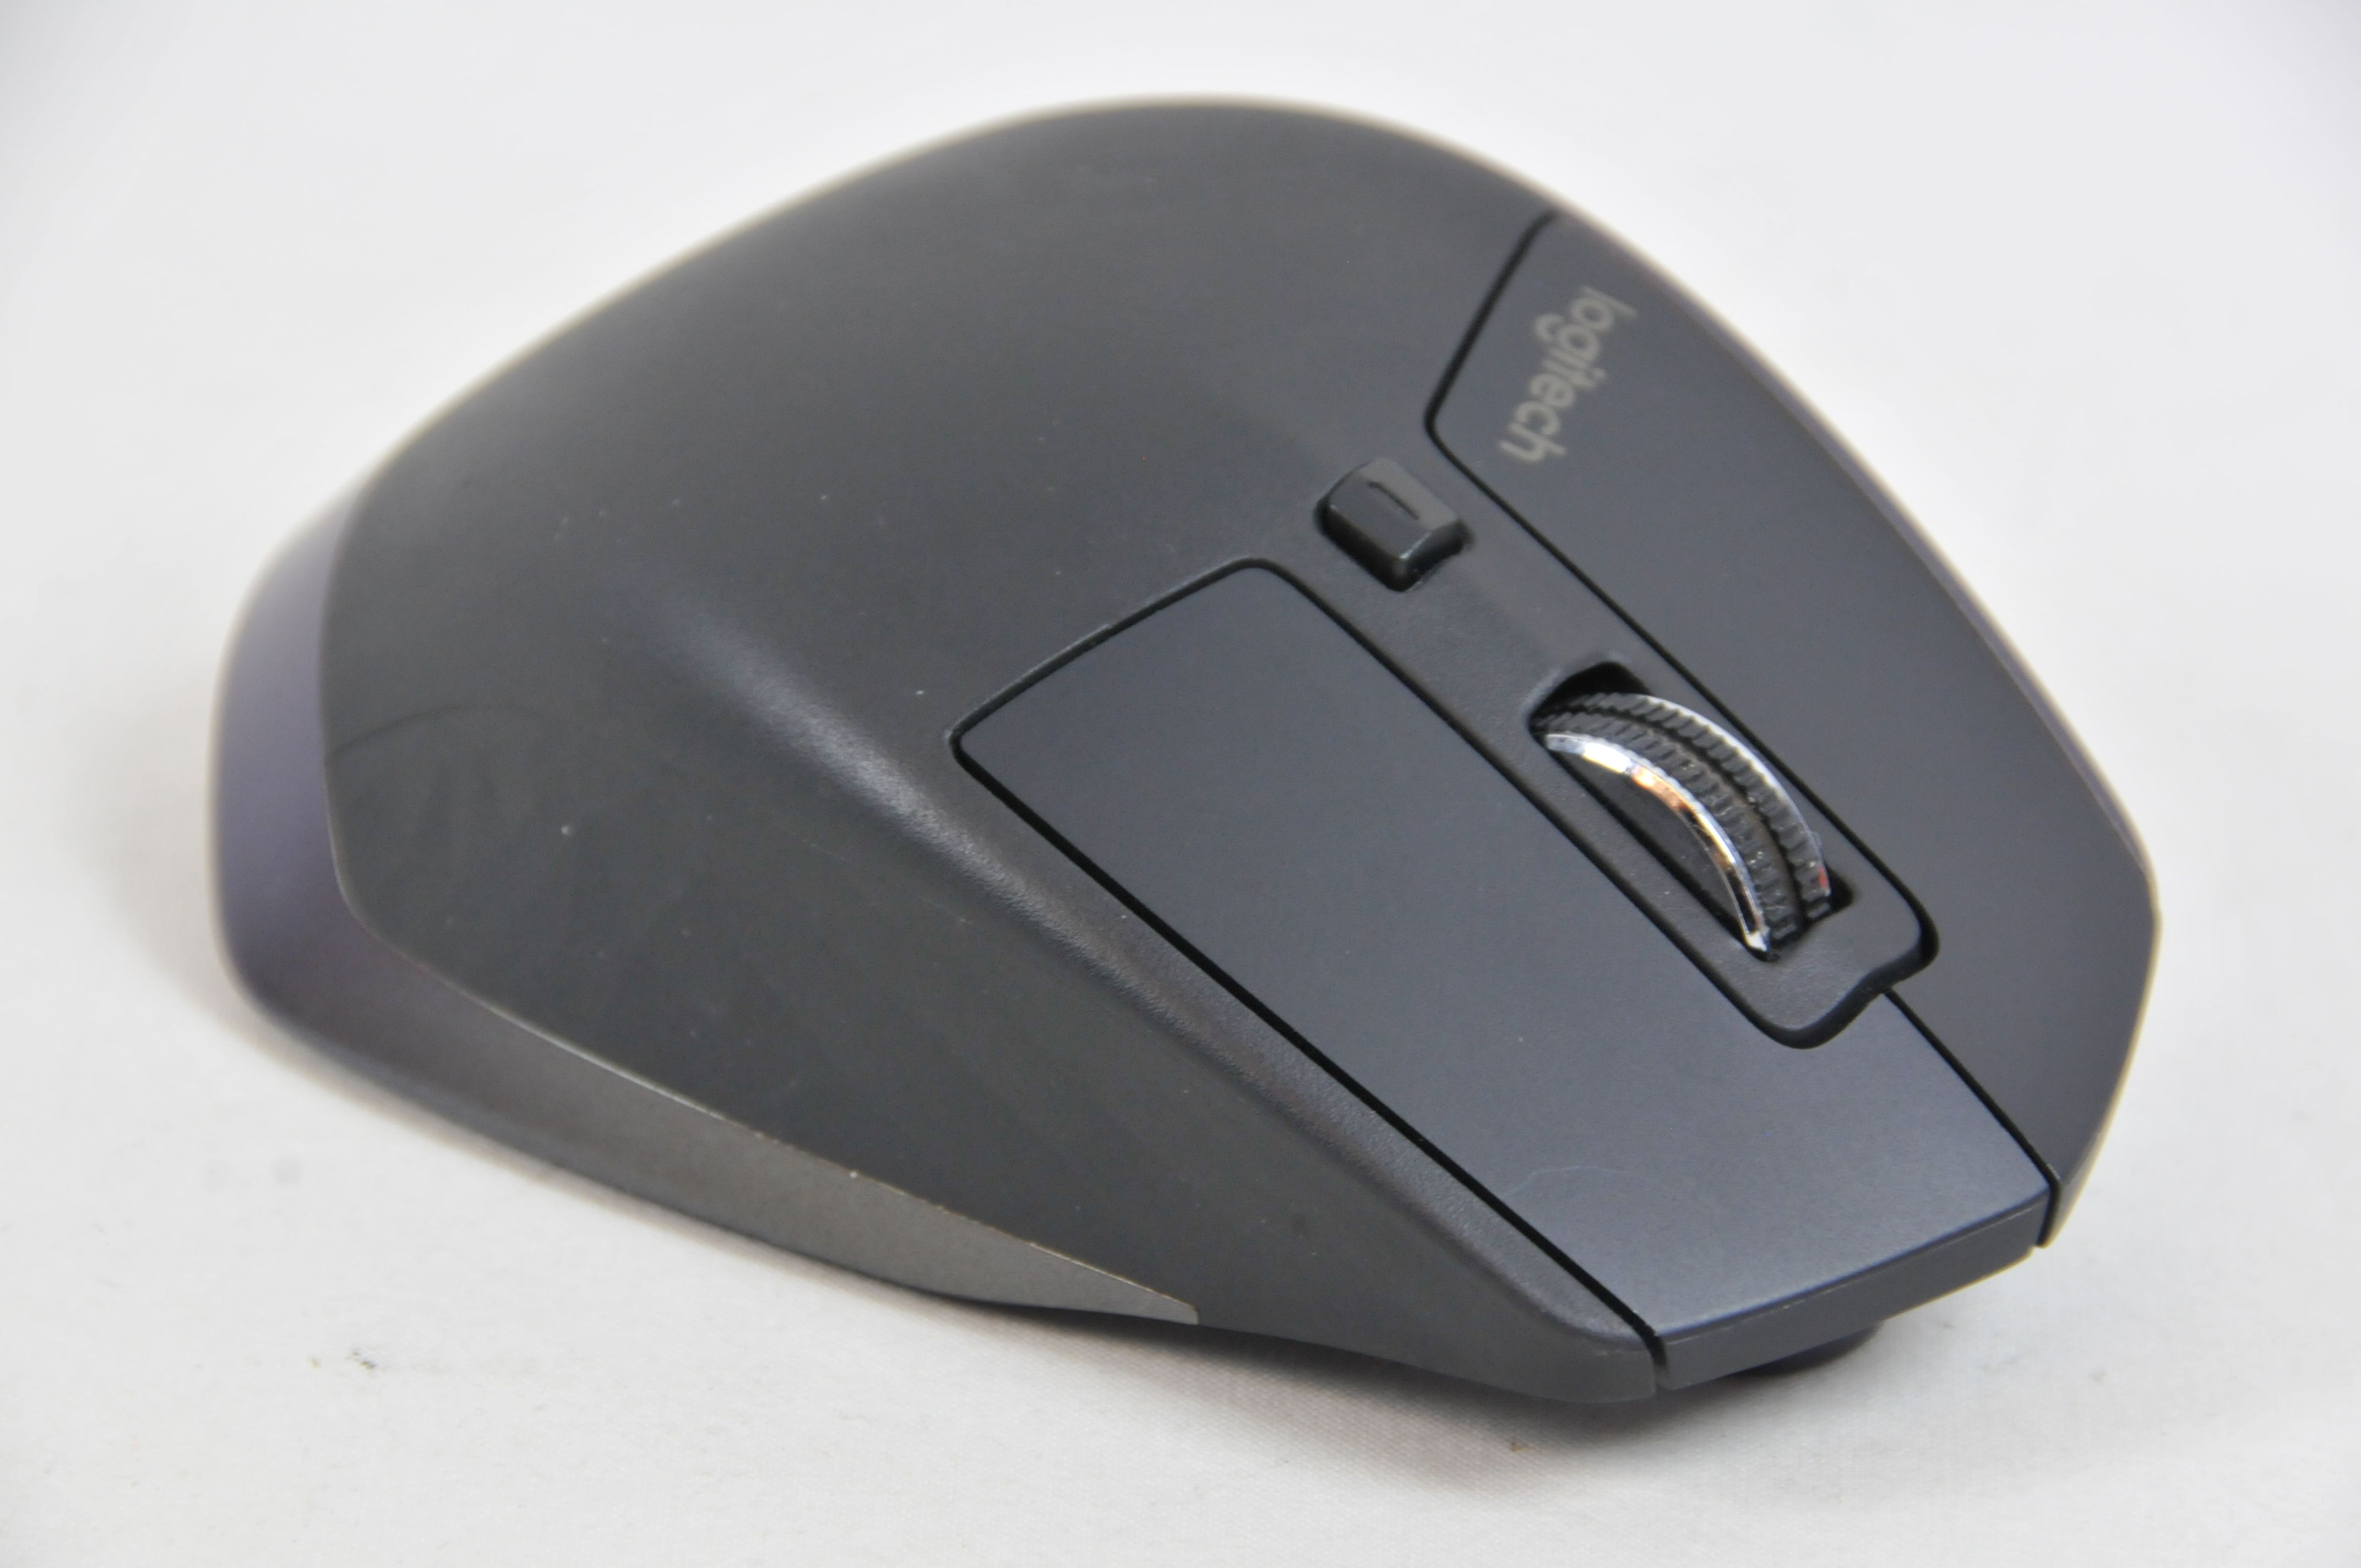 Logitech MX Master Wireless Bluetooth Laser Mouse for Mac